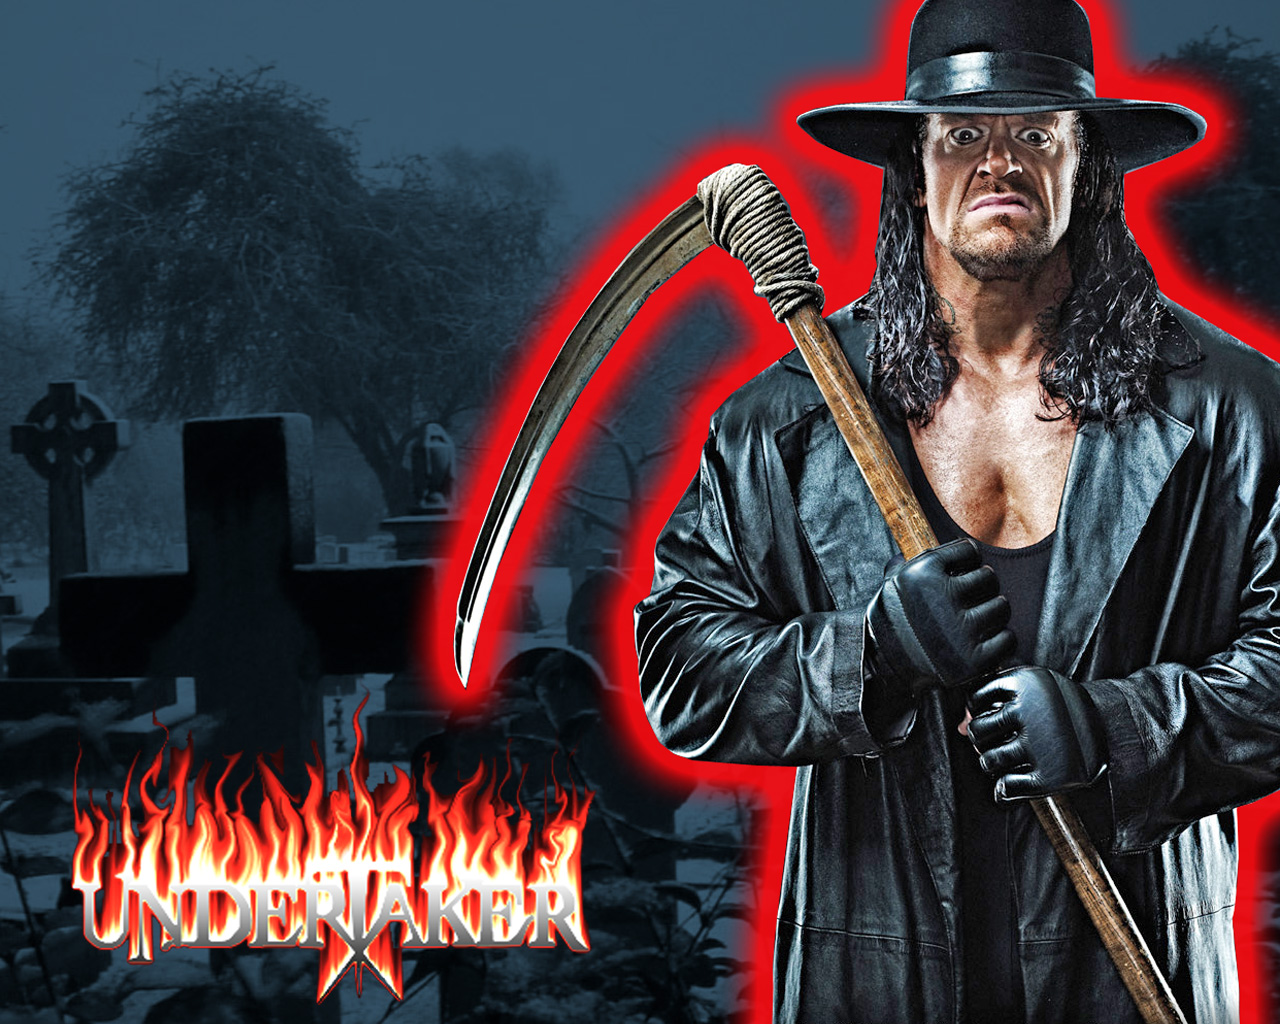 All Wallpapers: Undertaker Hd Wallpapers